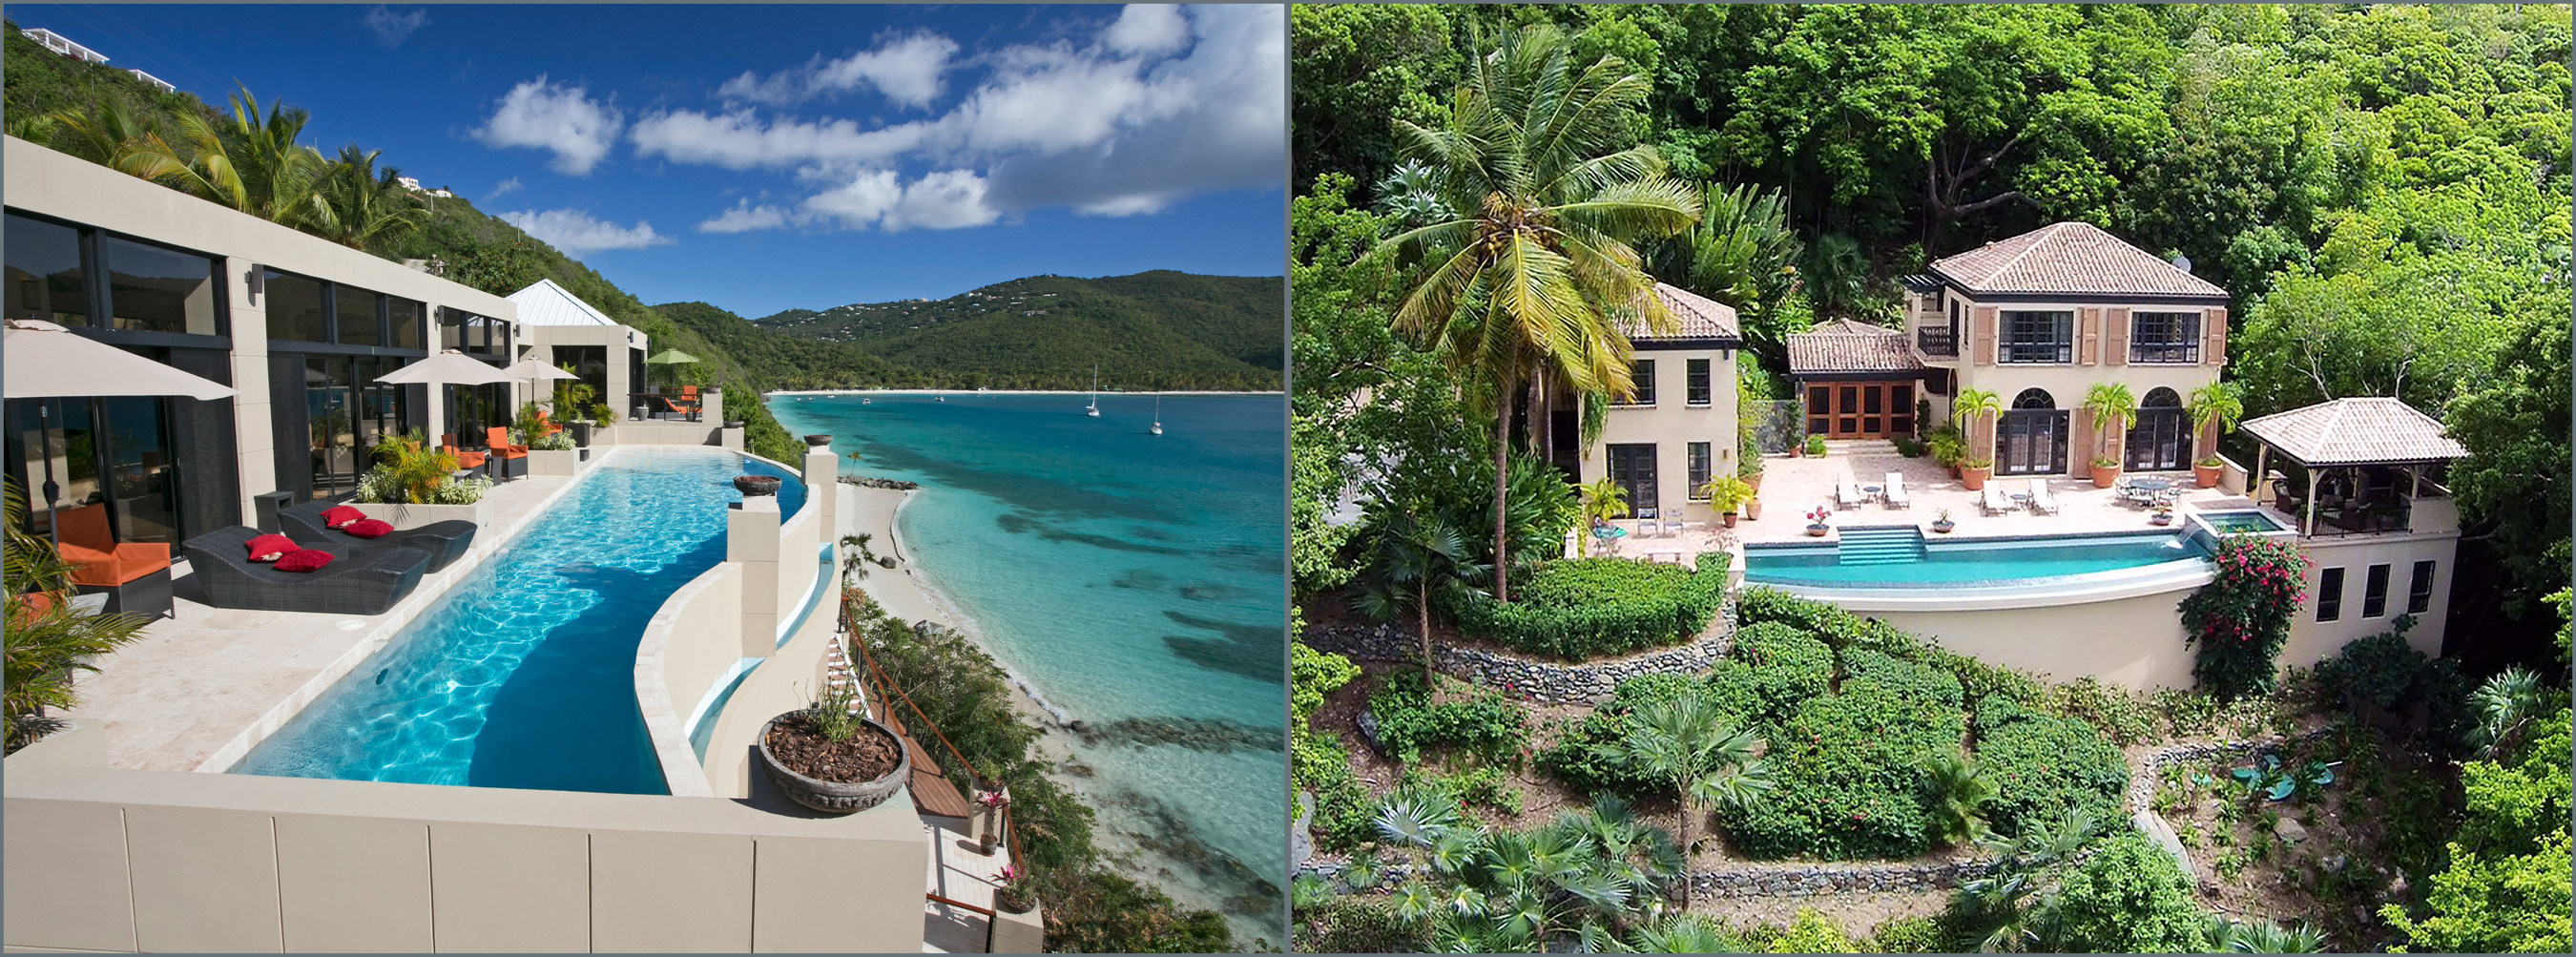 These luxurious Caribbean properties will be sold at auction on June 13, 2015 by Platinum Luxury Auctions. On St. Thomas, Platinum will offer an oceanfront estate in Magens Bay to the highest bidder above $5 million. The property was recently listed for $14.9 million. The firm will also offer St. John's Villa Rivendell for auction. Located within the exclusive Peter Bay community, the property will sell to the highest bidder above $2.5 million. The Villa was recently offered for $6.25 million. The property's additional, vacant parcel will also be offered at auction.